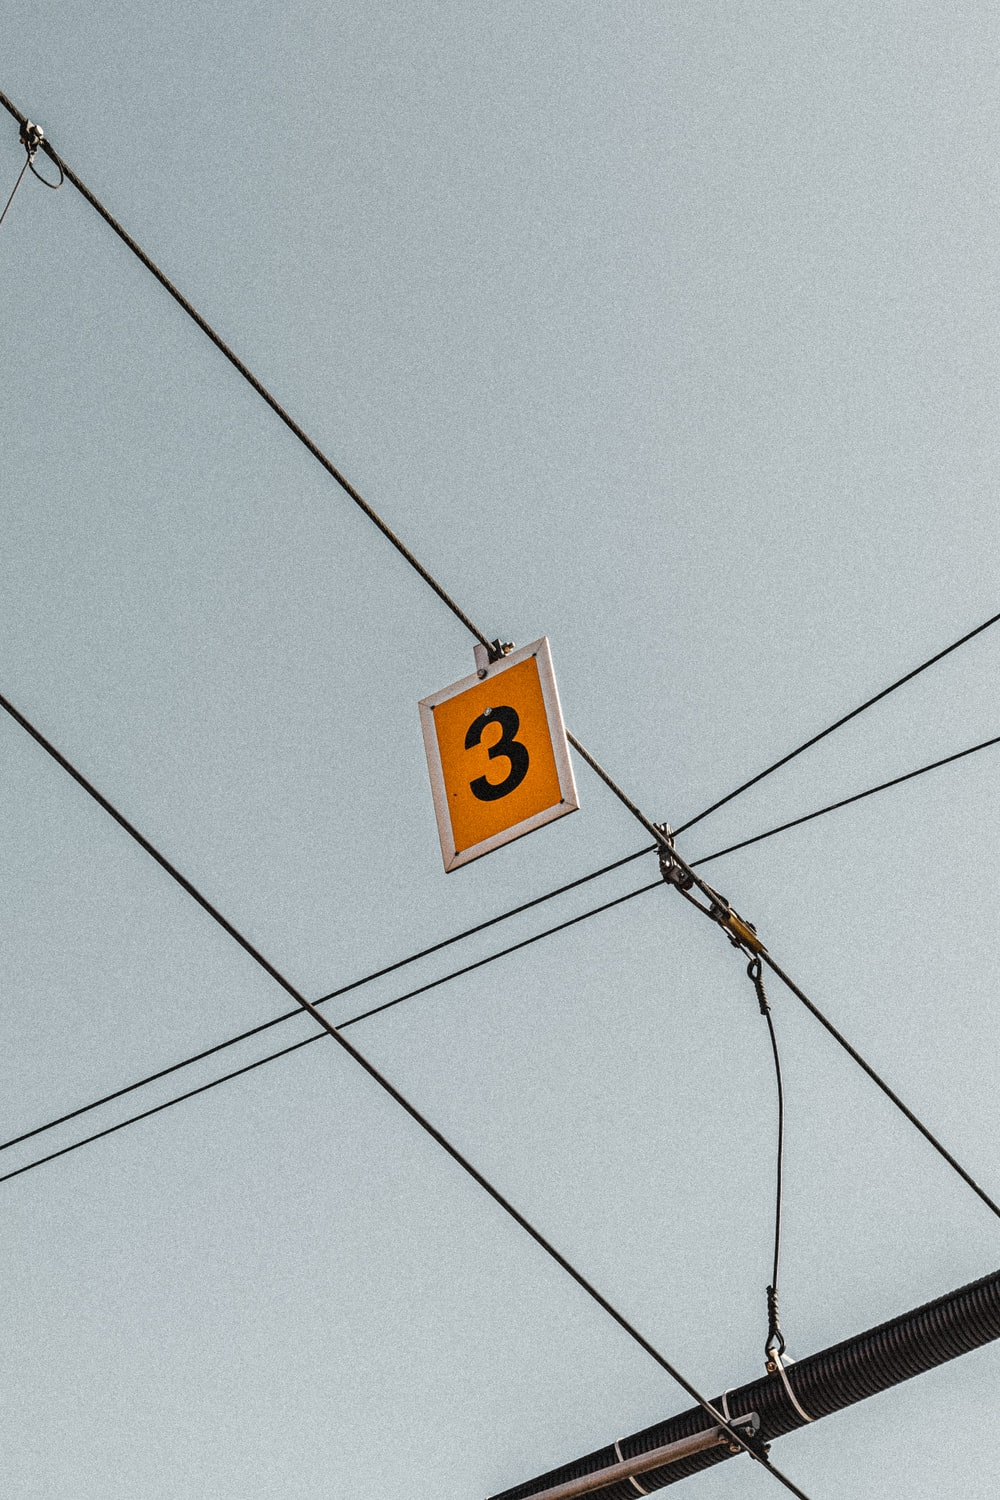 yellow 3 signboard hanging from cable